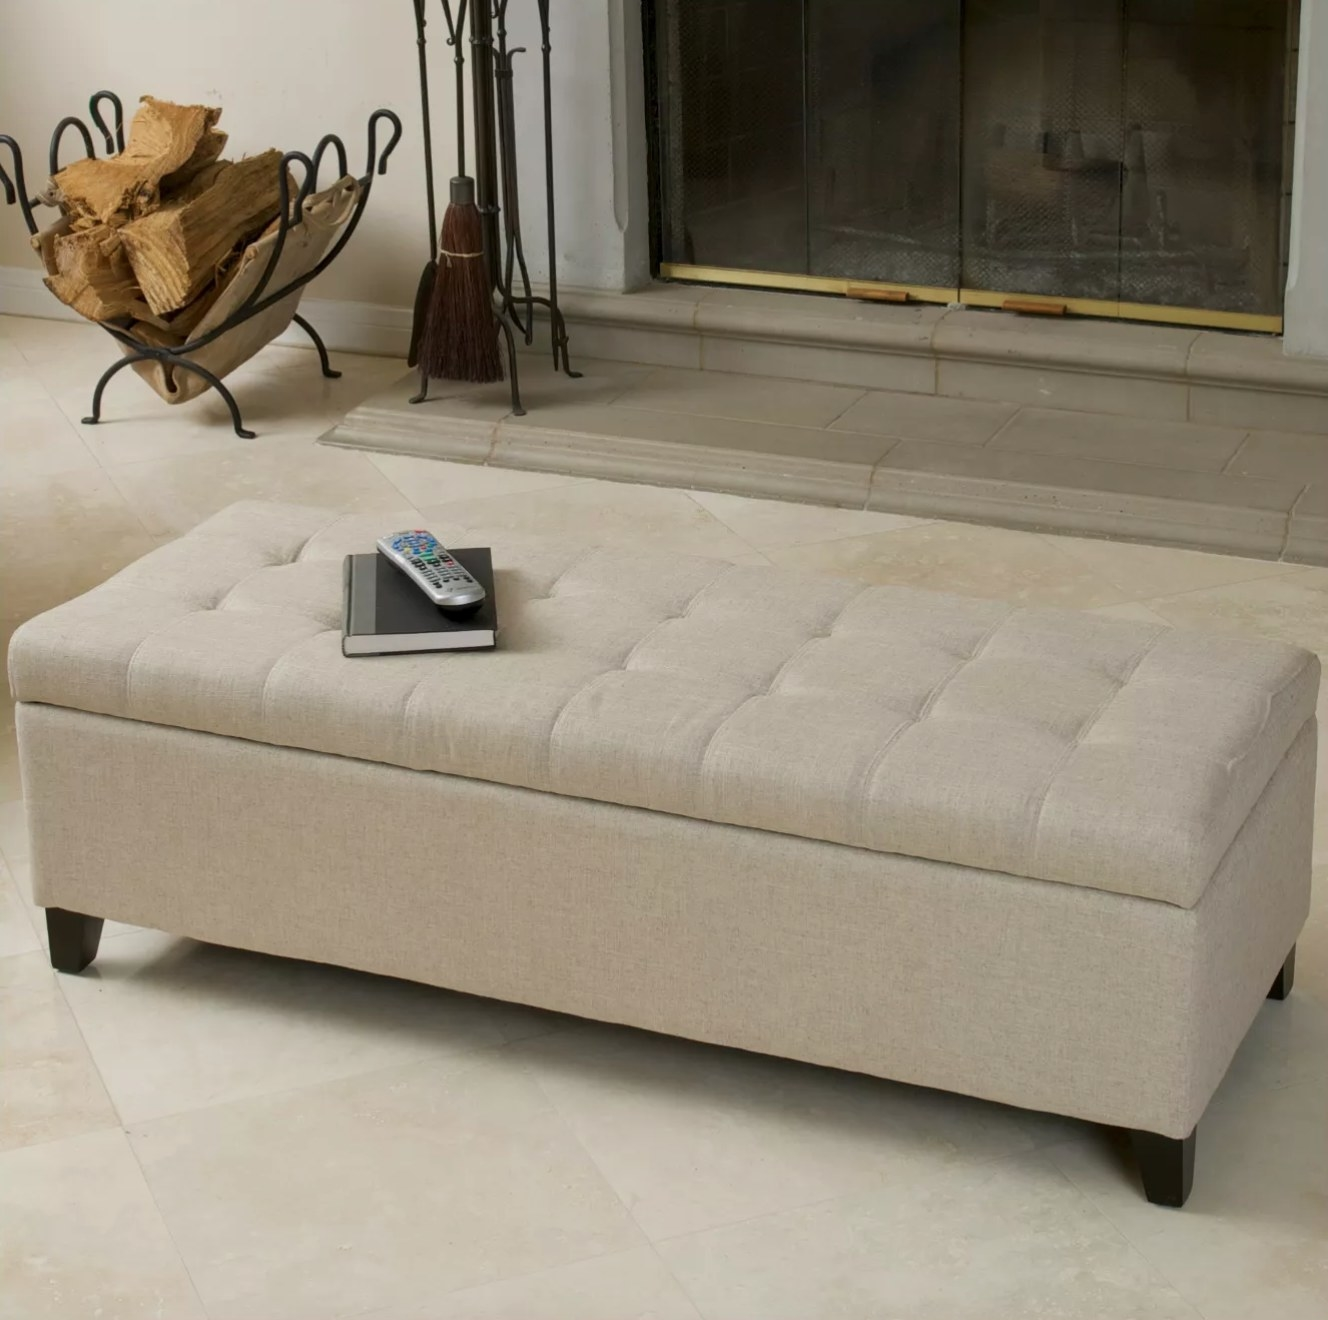 The tufted storage ottoman in beige near a fireplace